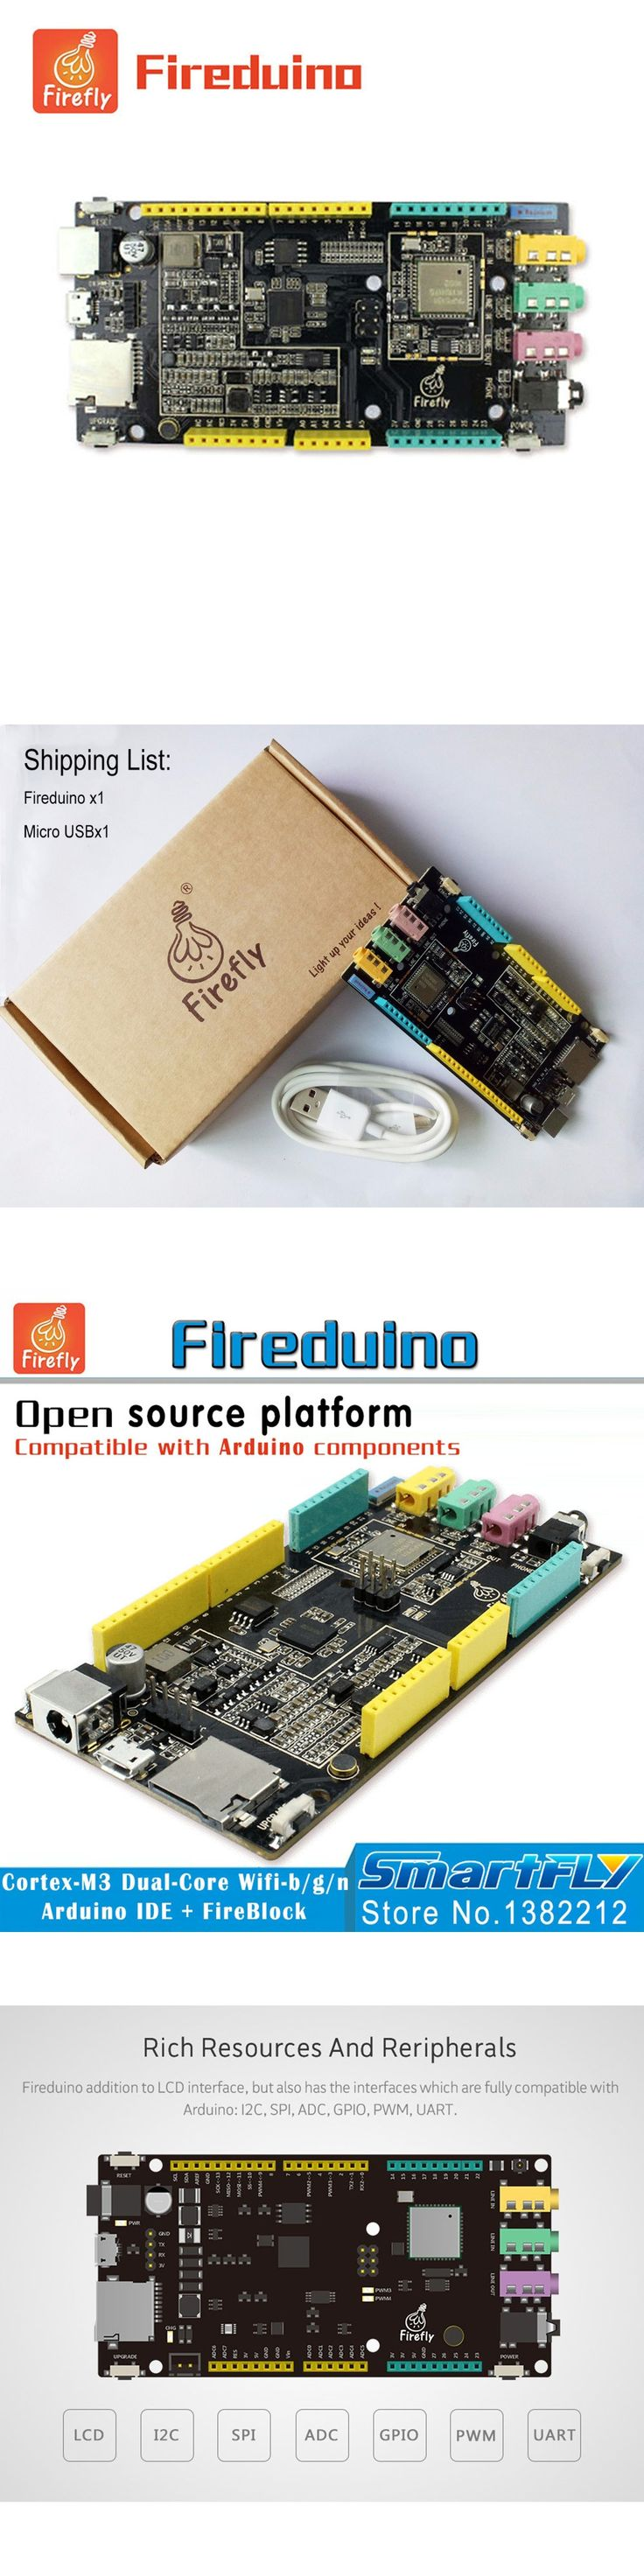 Fireduino PC Combine STEM education scratch Graphic program IOT development board pcduino wifi module ARM Cortex M3 demo